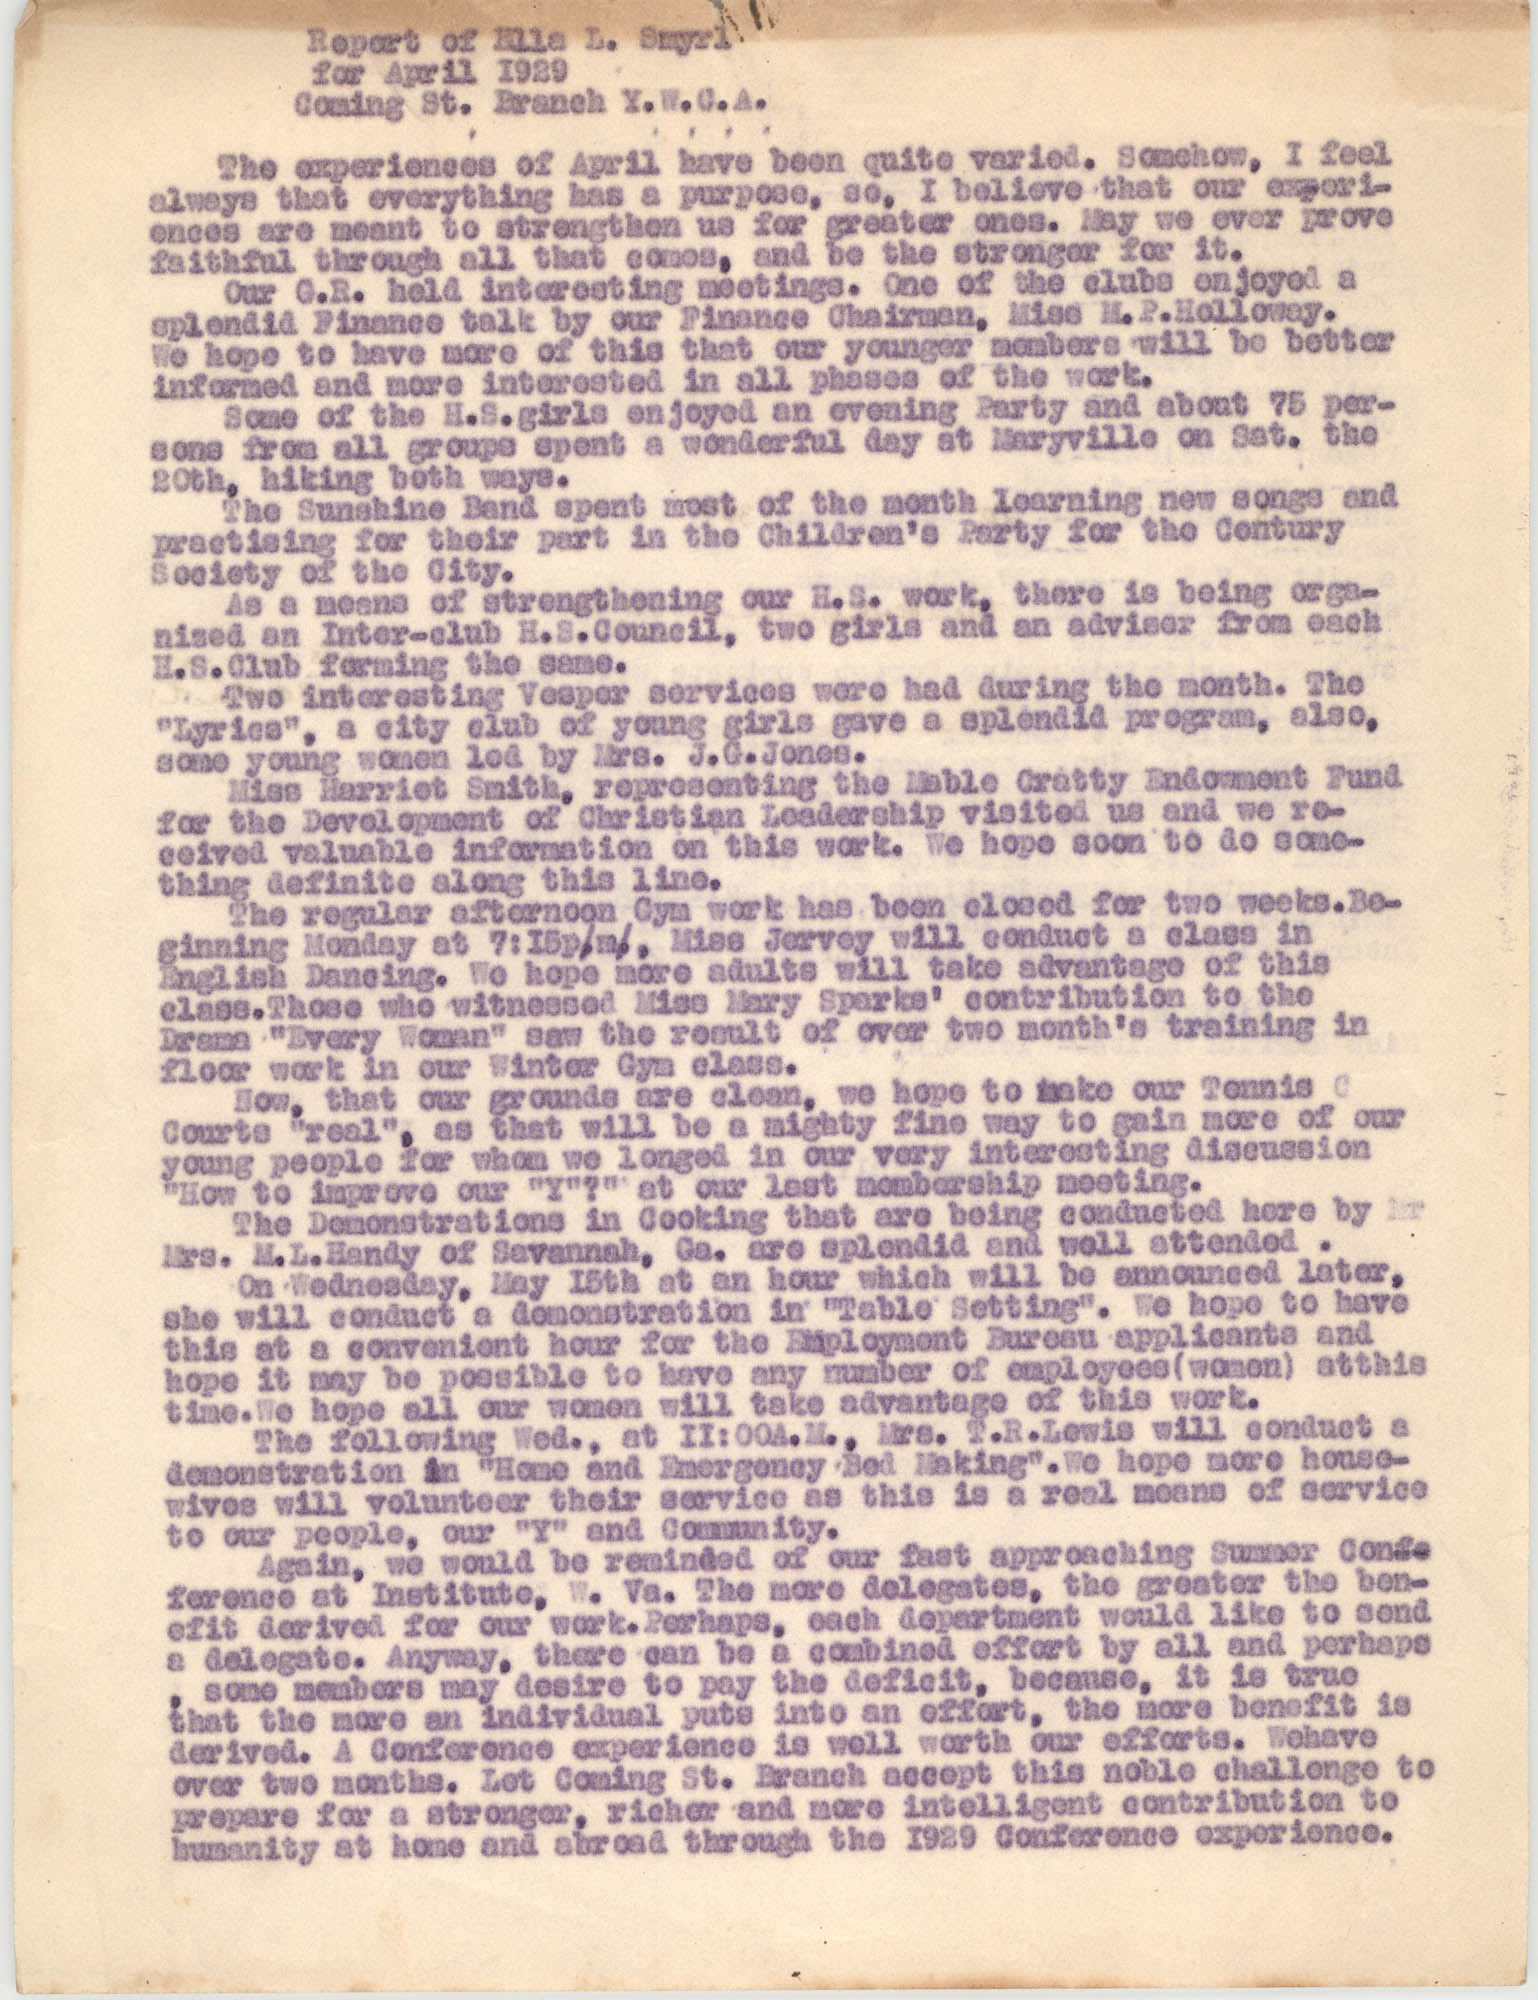 Monthly Report for the Coming Street Y.W.C.A., April 1929